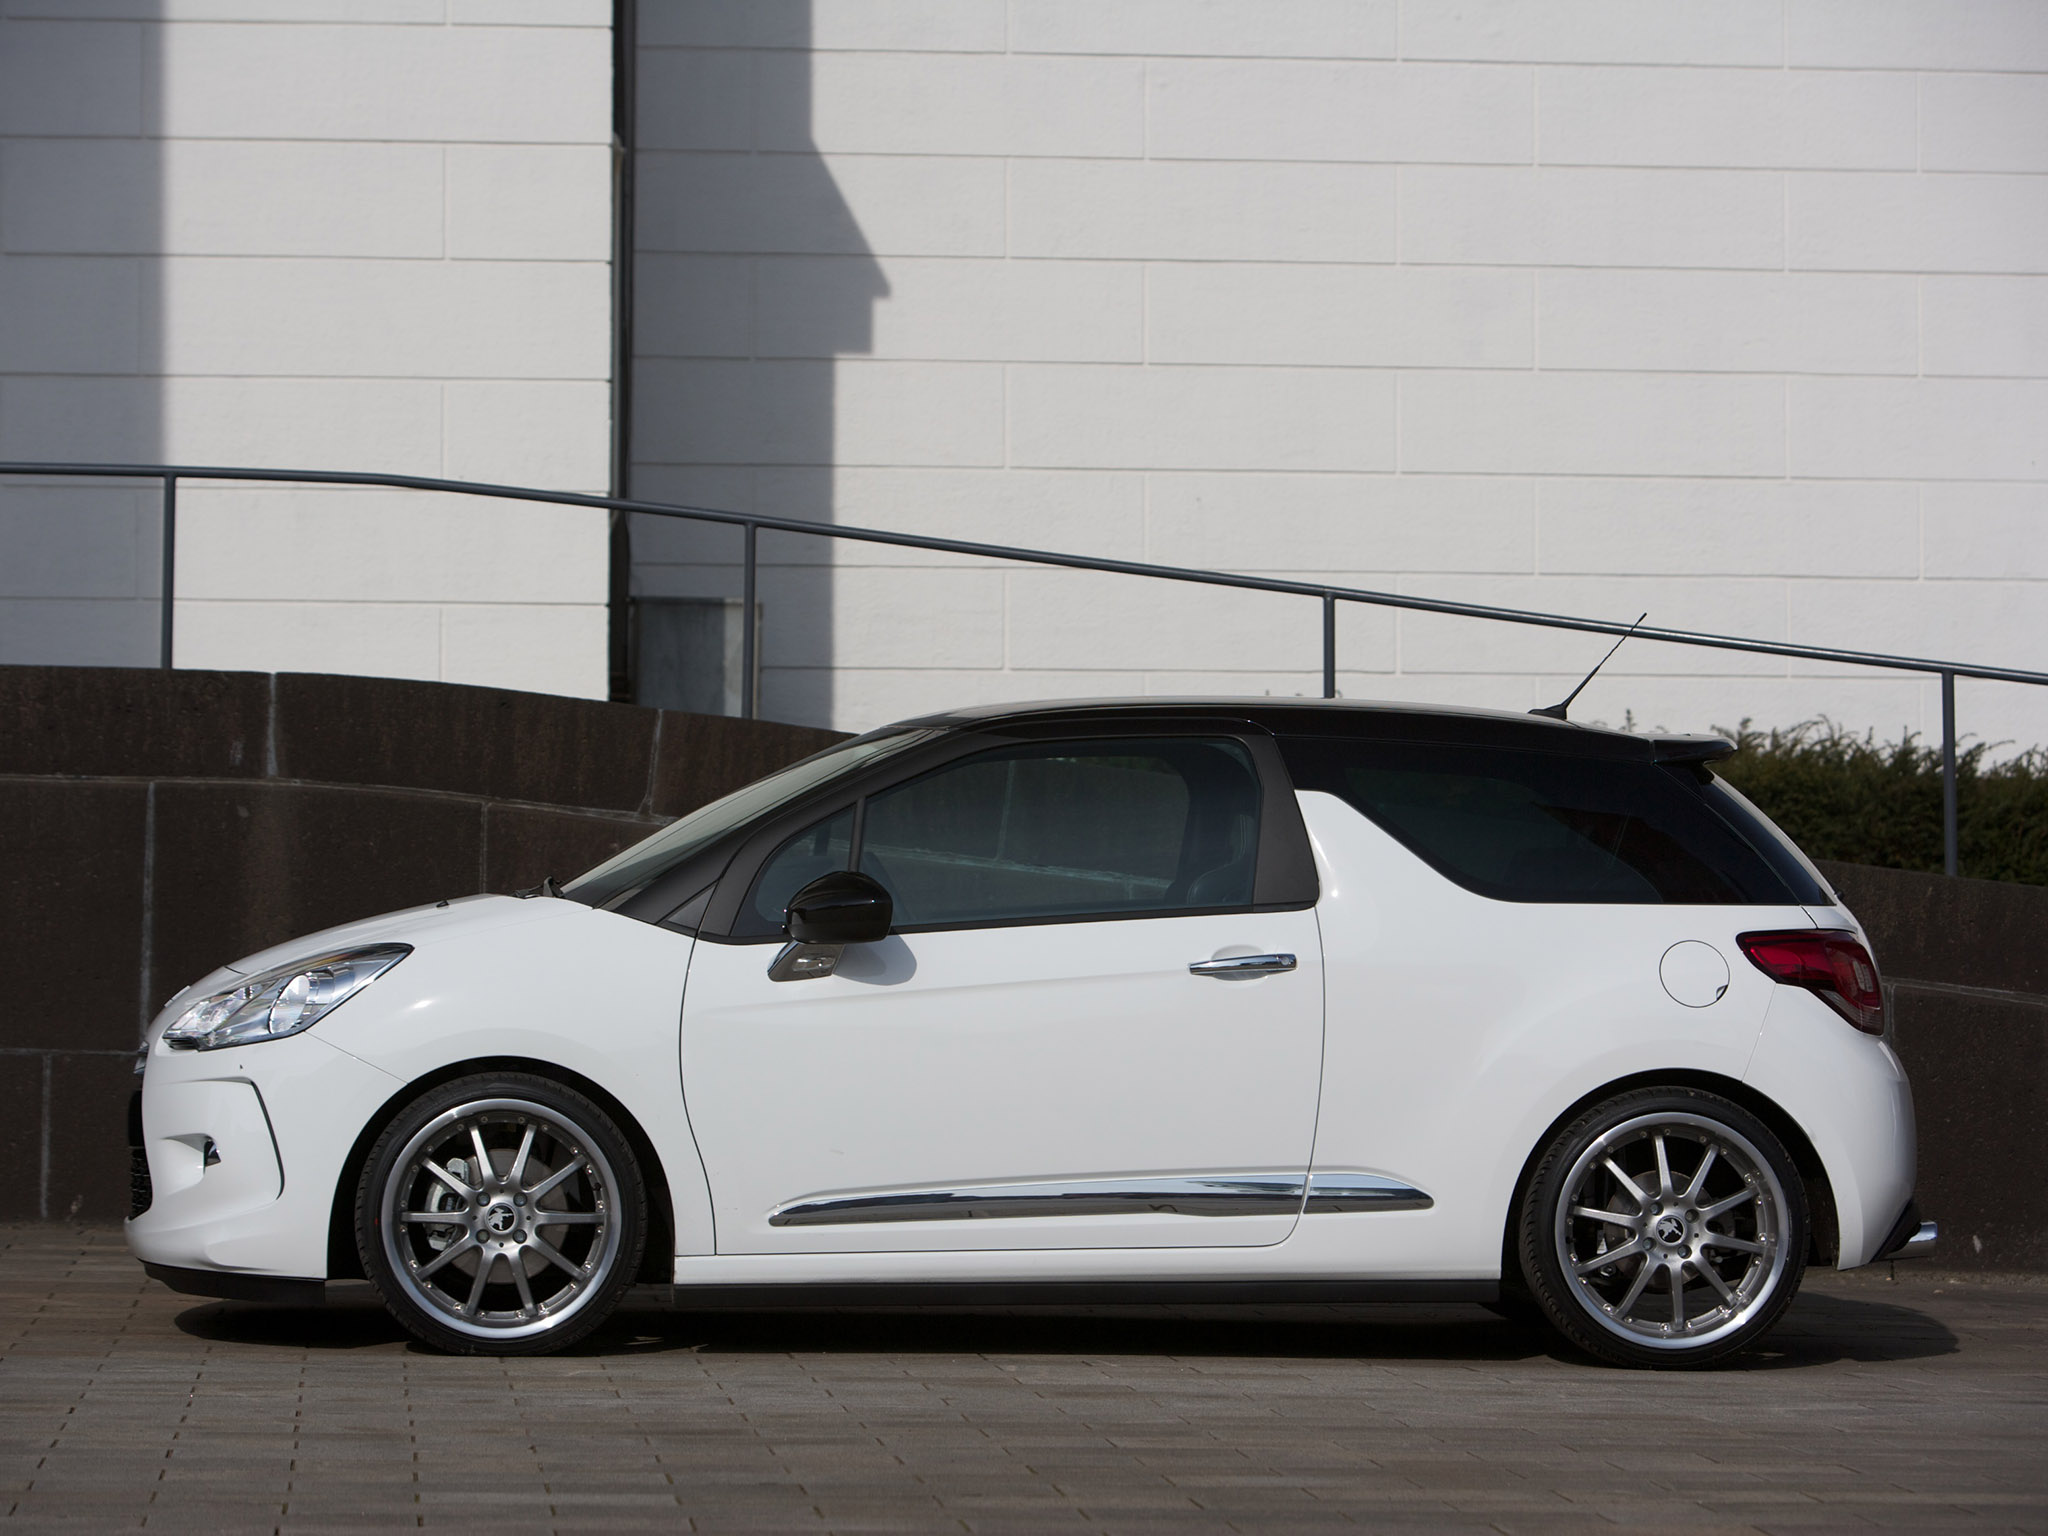 musketier citroen ds3 2010 musketier citroen ds3 2010 photo 05 car in pictures car photo gallery. Black Bedroom Furniture Sets. Home Design Ideas